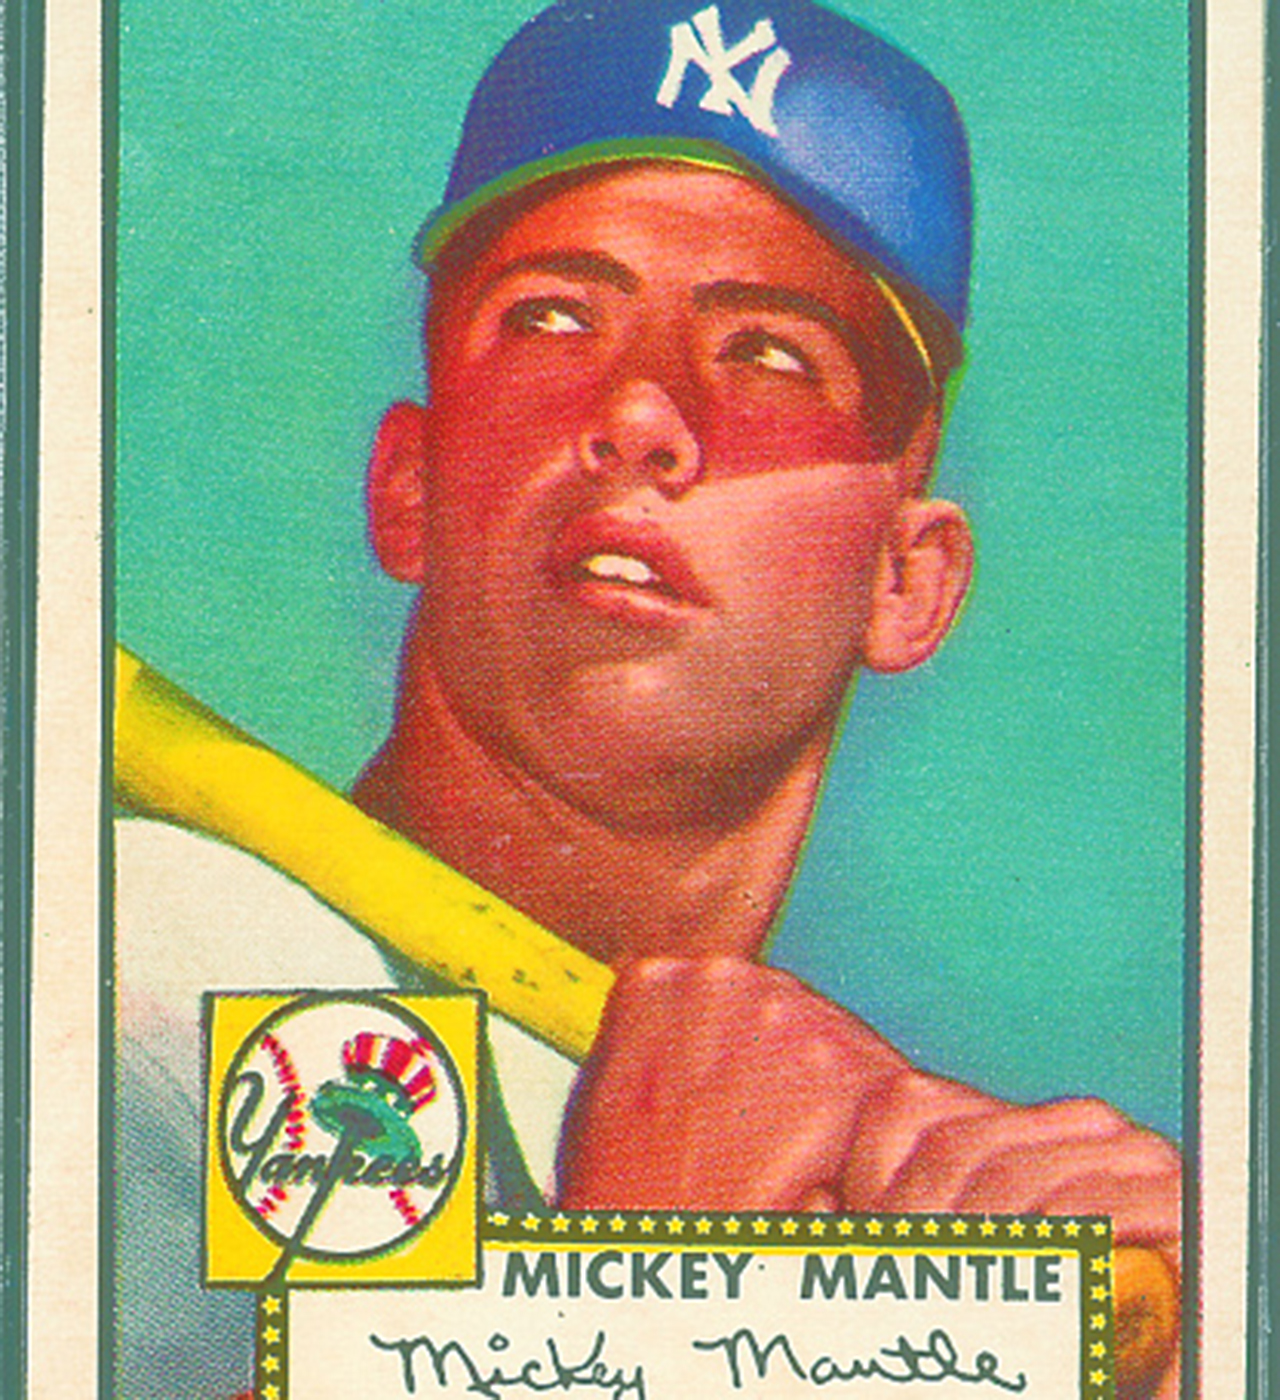 Mickey Mantle 1952 Topps Card Sells For Over A Million